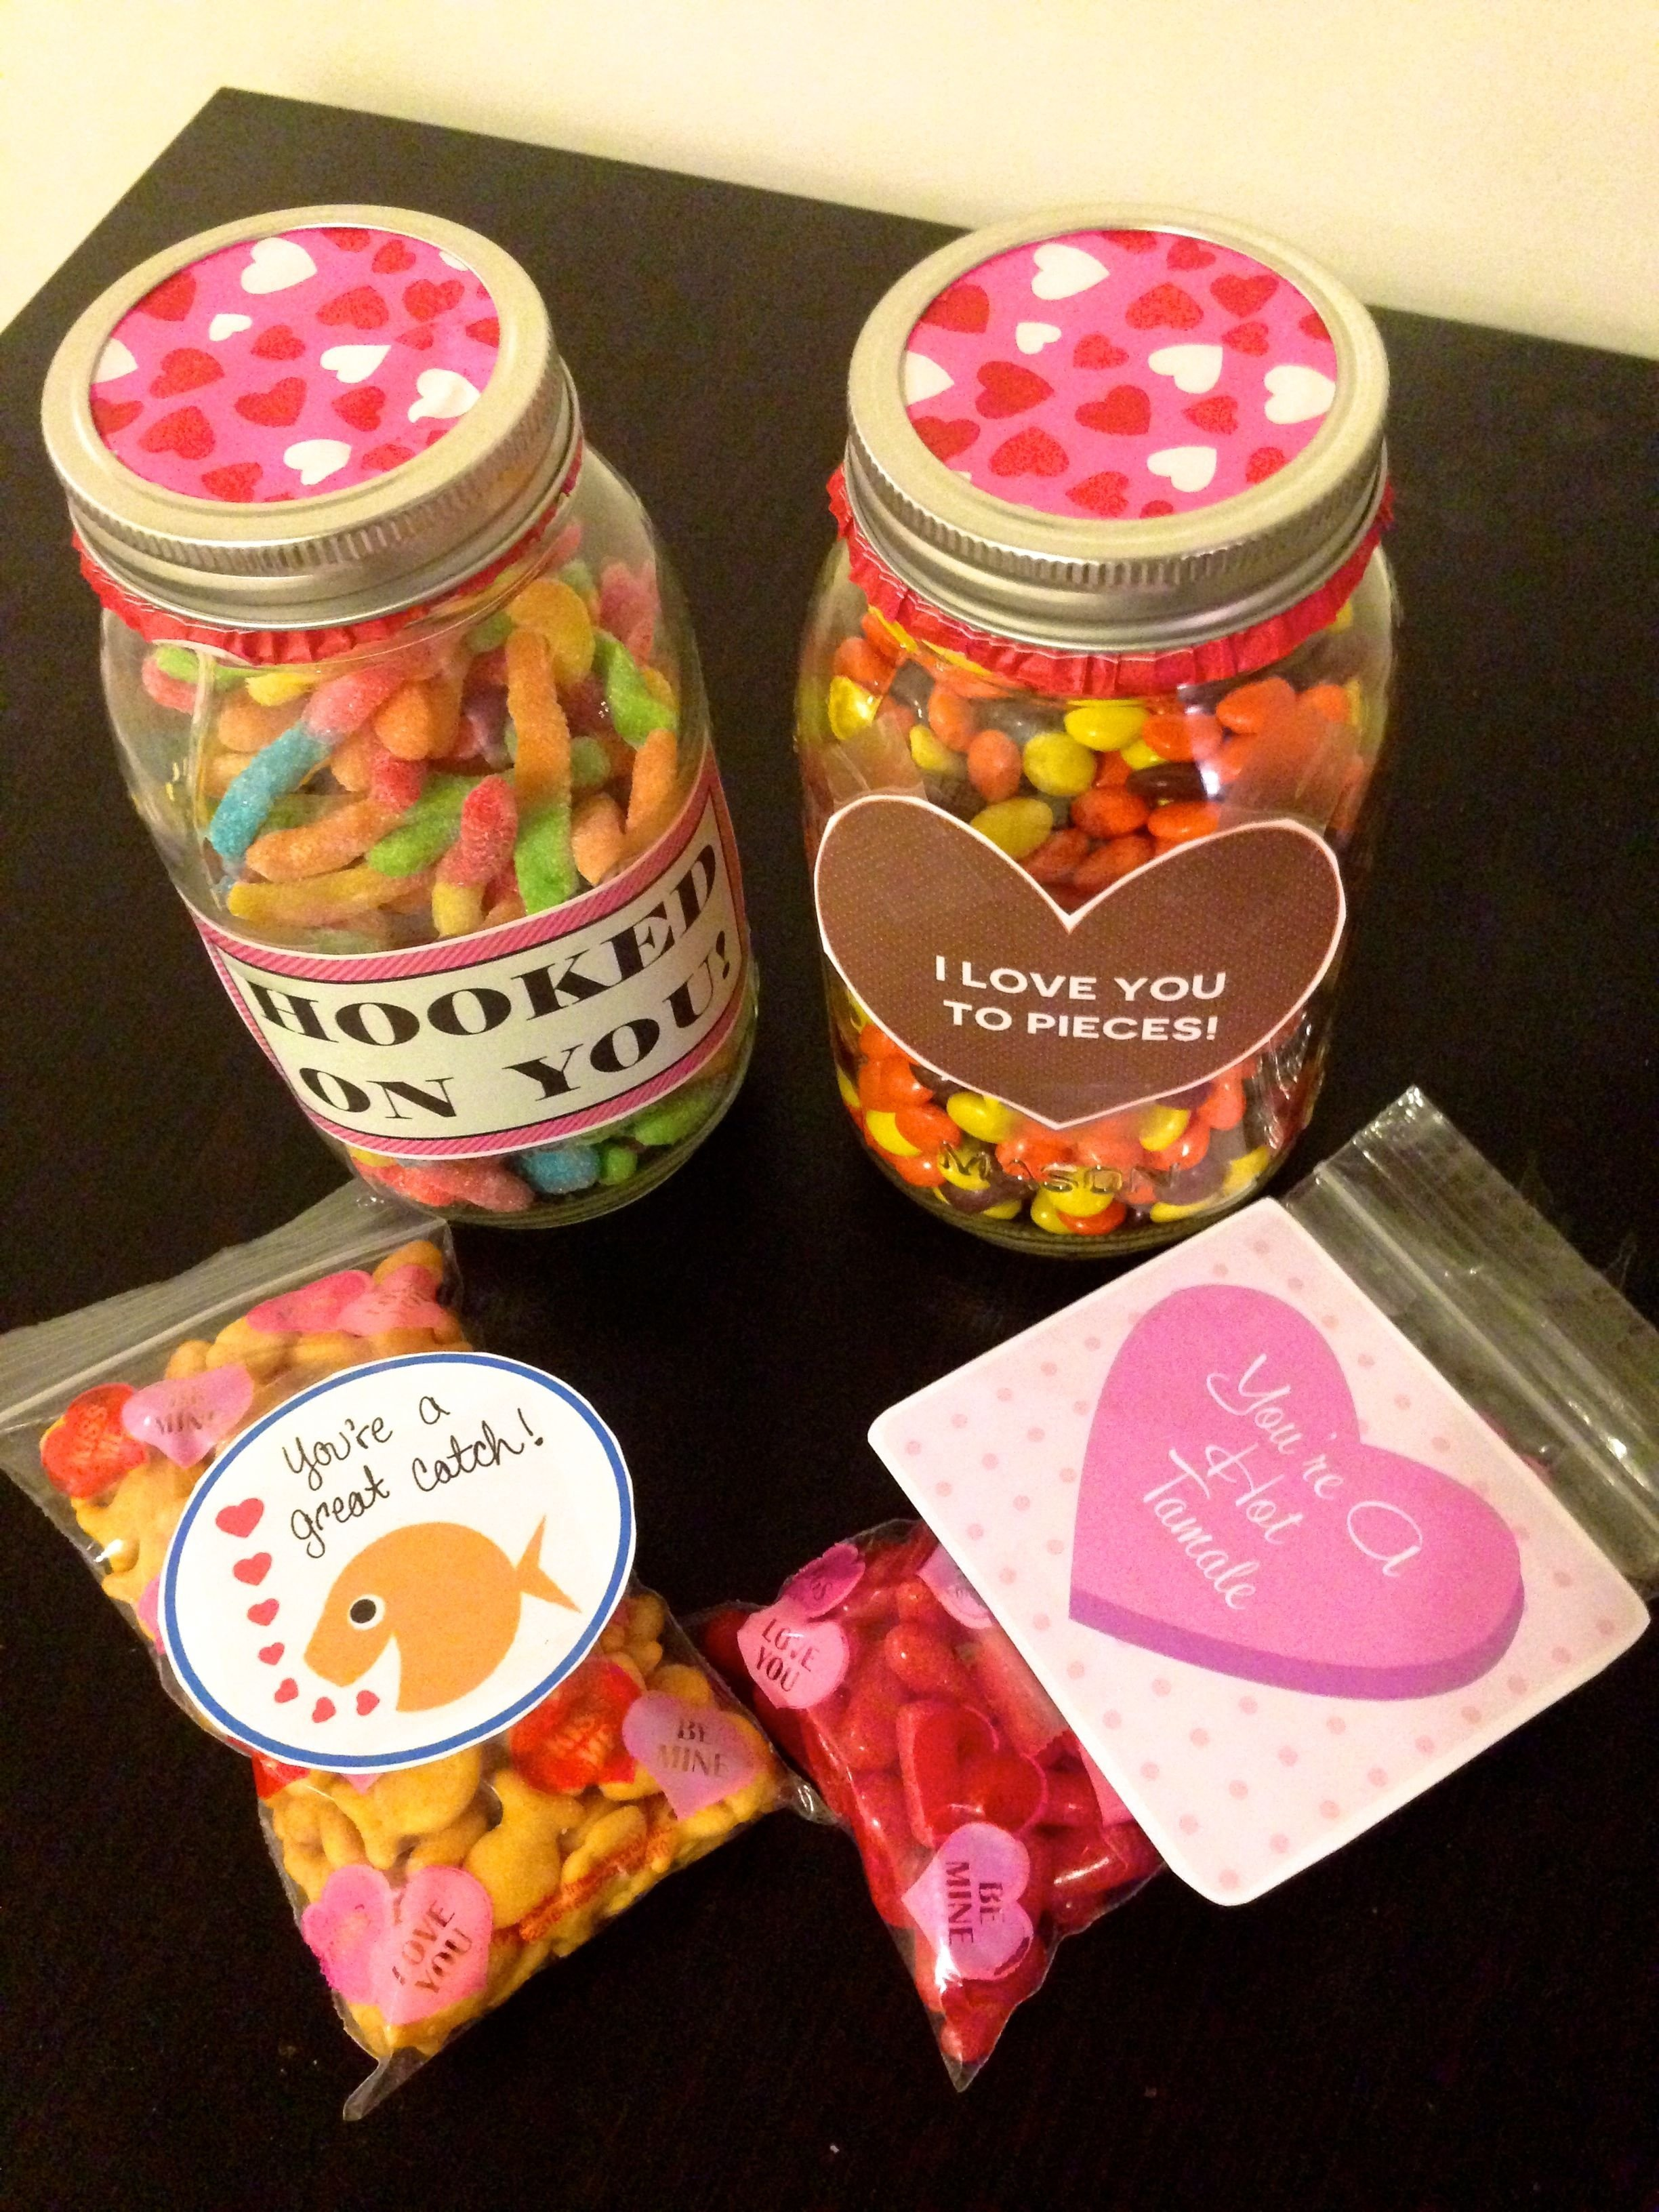 10 Gorgeous Valentines Day Gift Ideas For Men romantic gift idea for him on a budget budgeting honey and romantic 29 2020